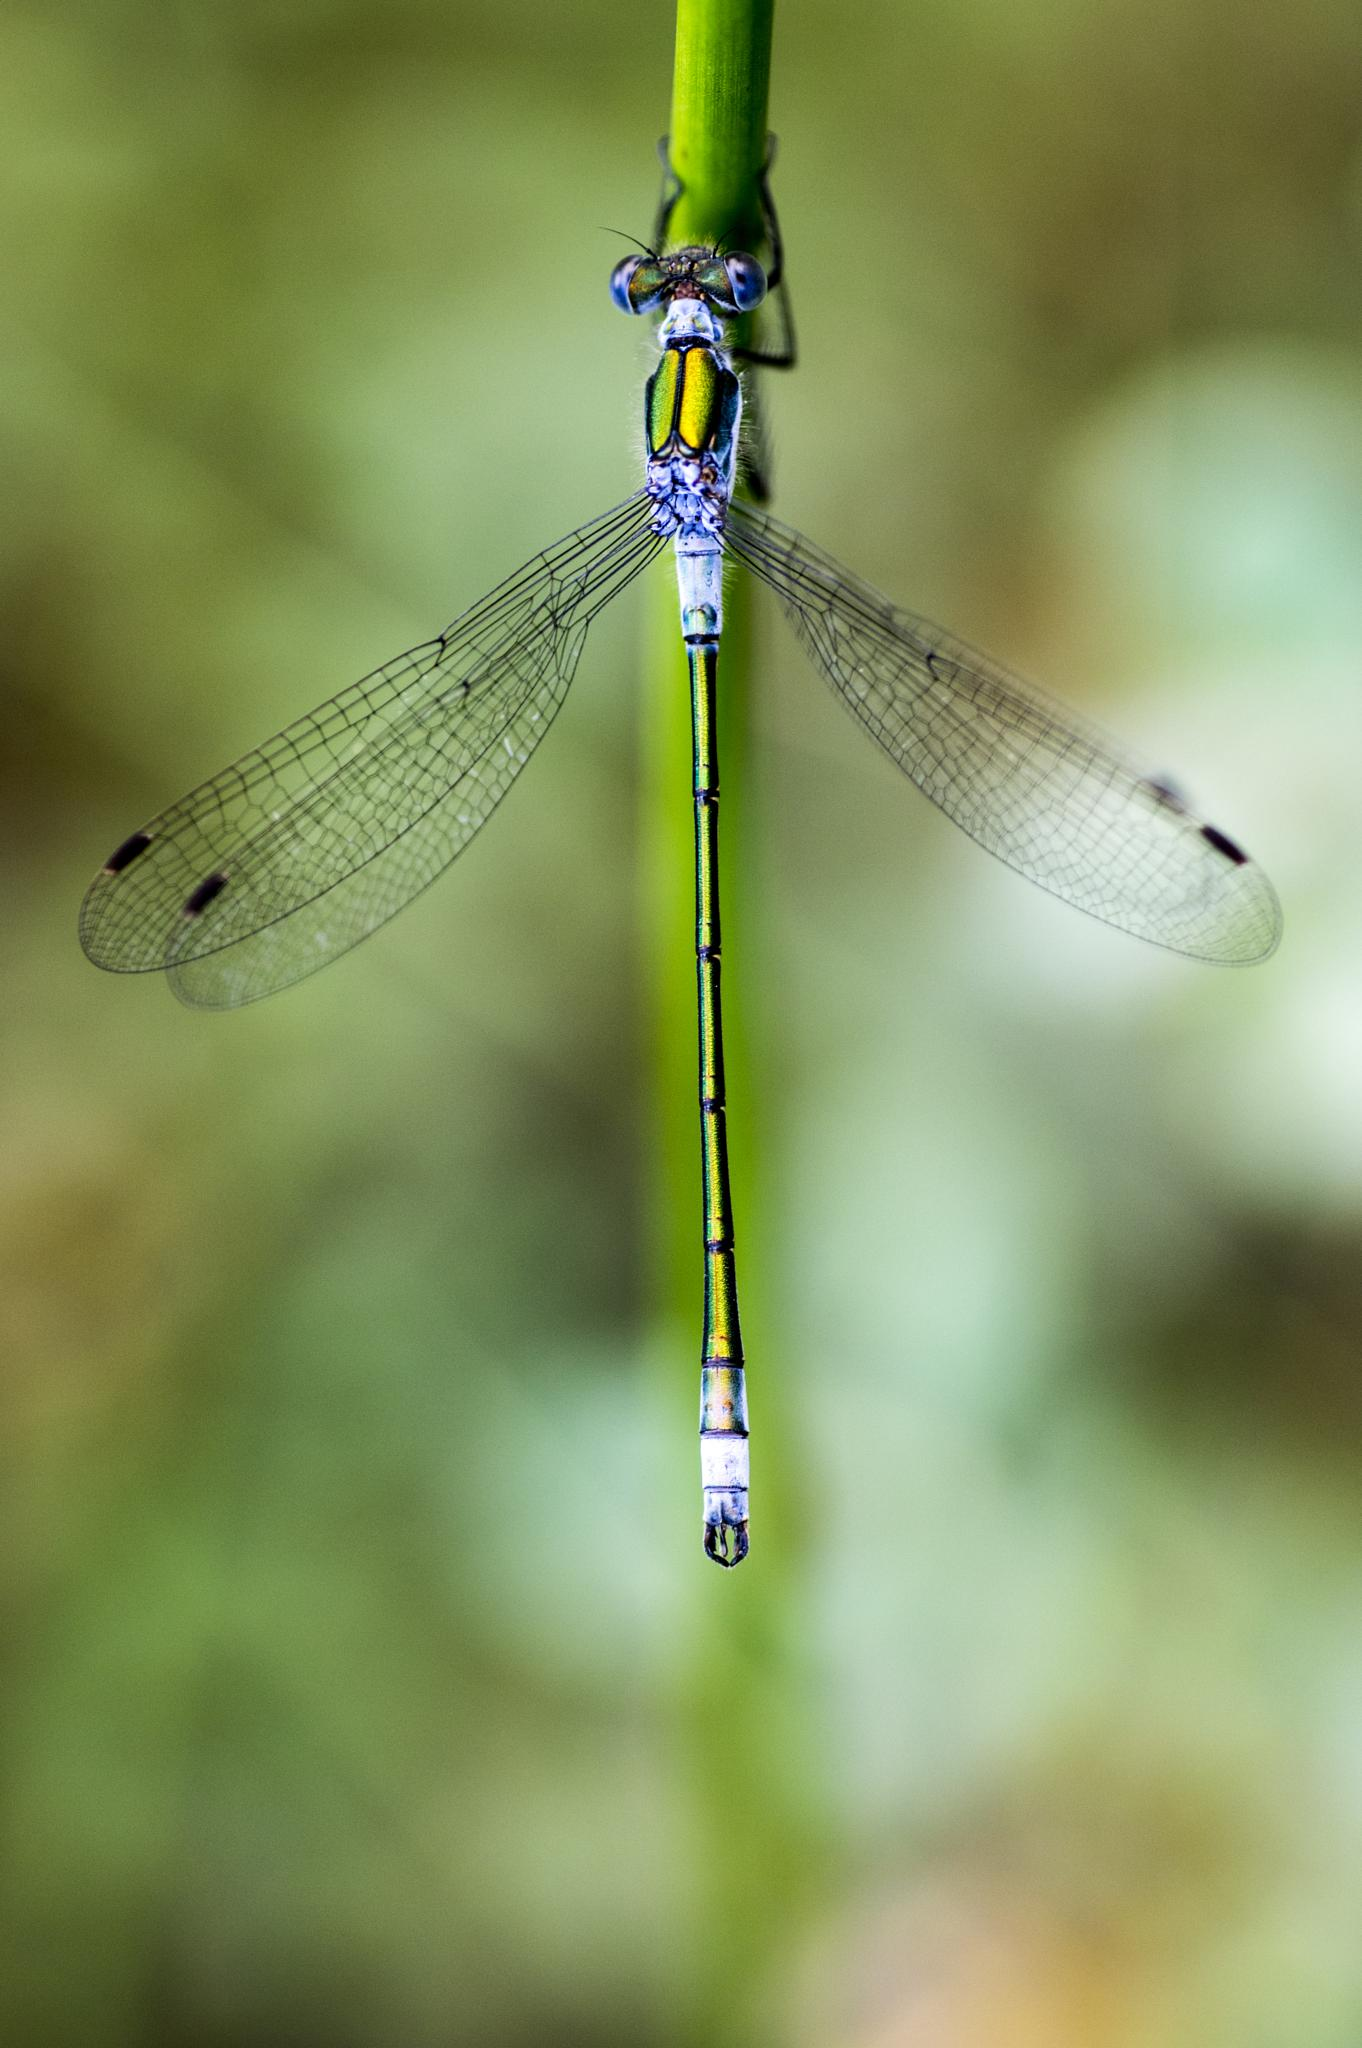 baby dragonfly by gorber